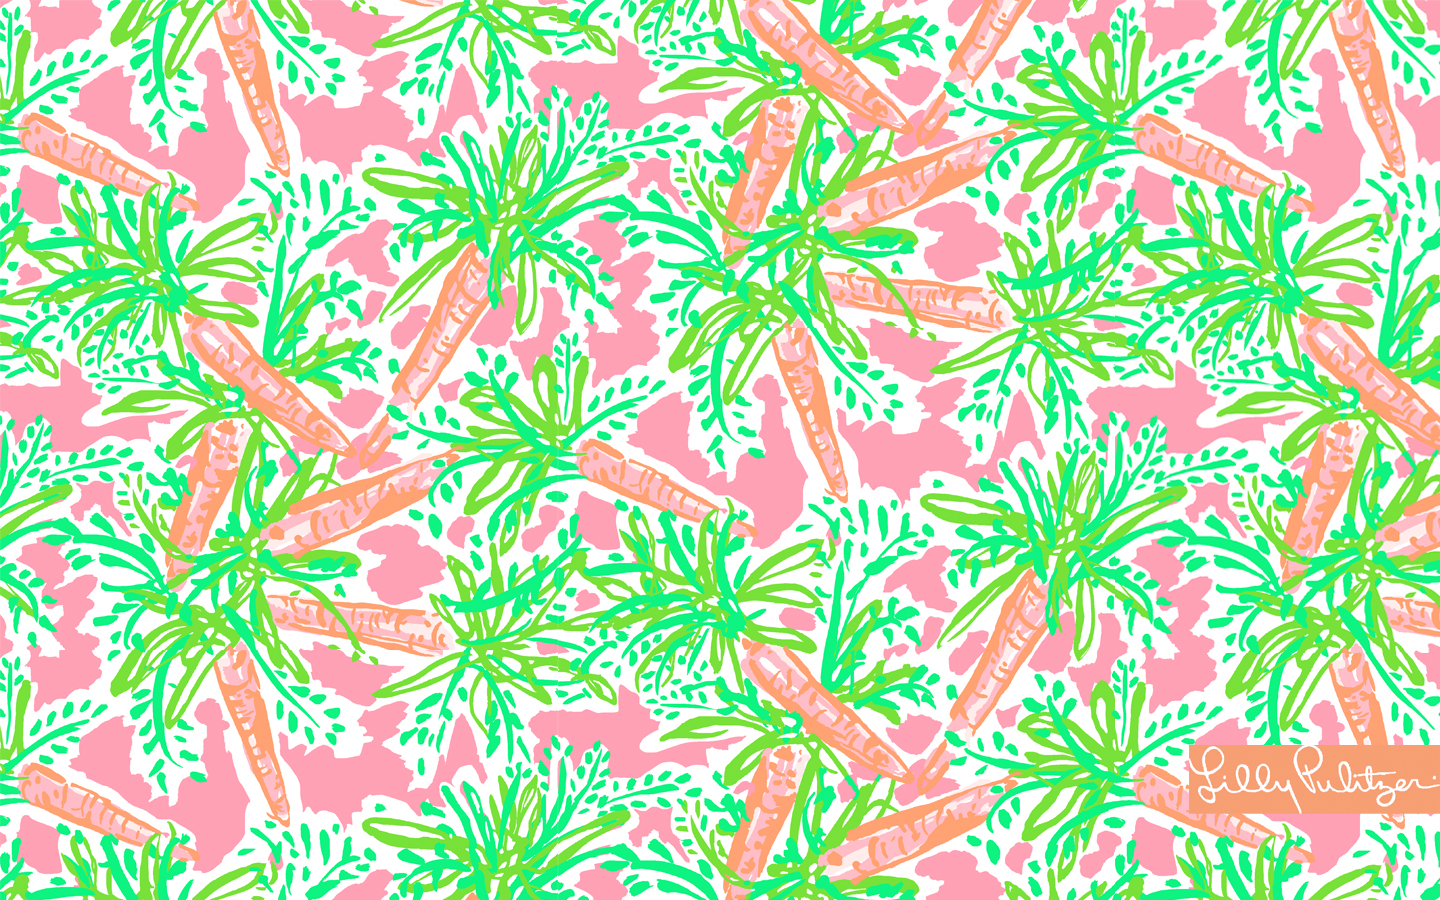 Lilly Pulitzer Backgrounds wallpaper 1440x900 45284